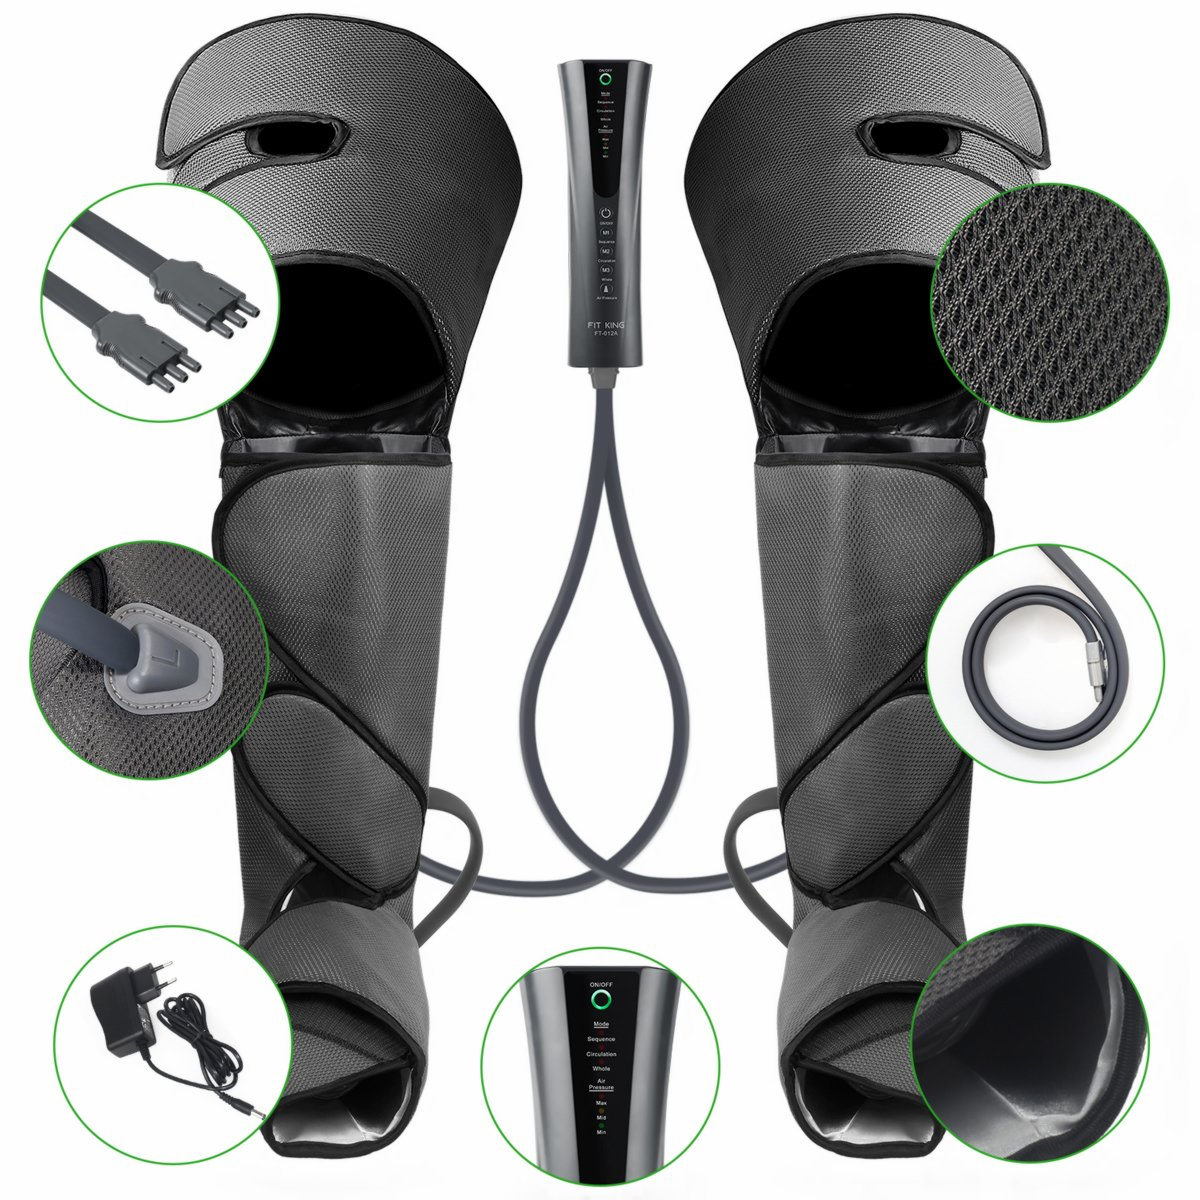 FIT KING Air Compression Leg Massager for Foot Calf and Thigh Circulation Massage and Slimming with Extensions and 3 Modes 3 Intensities by FIT KING (Image #7)